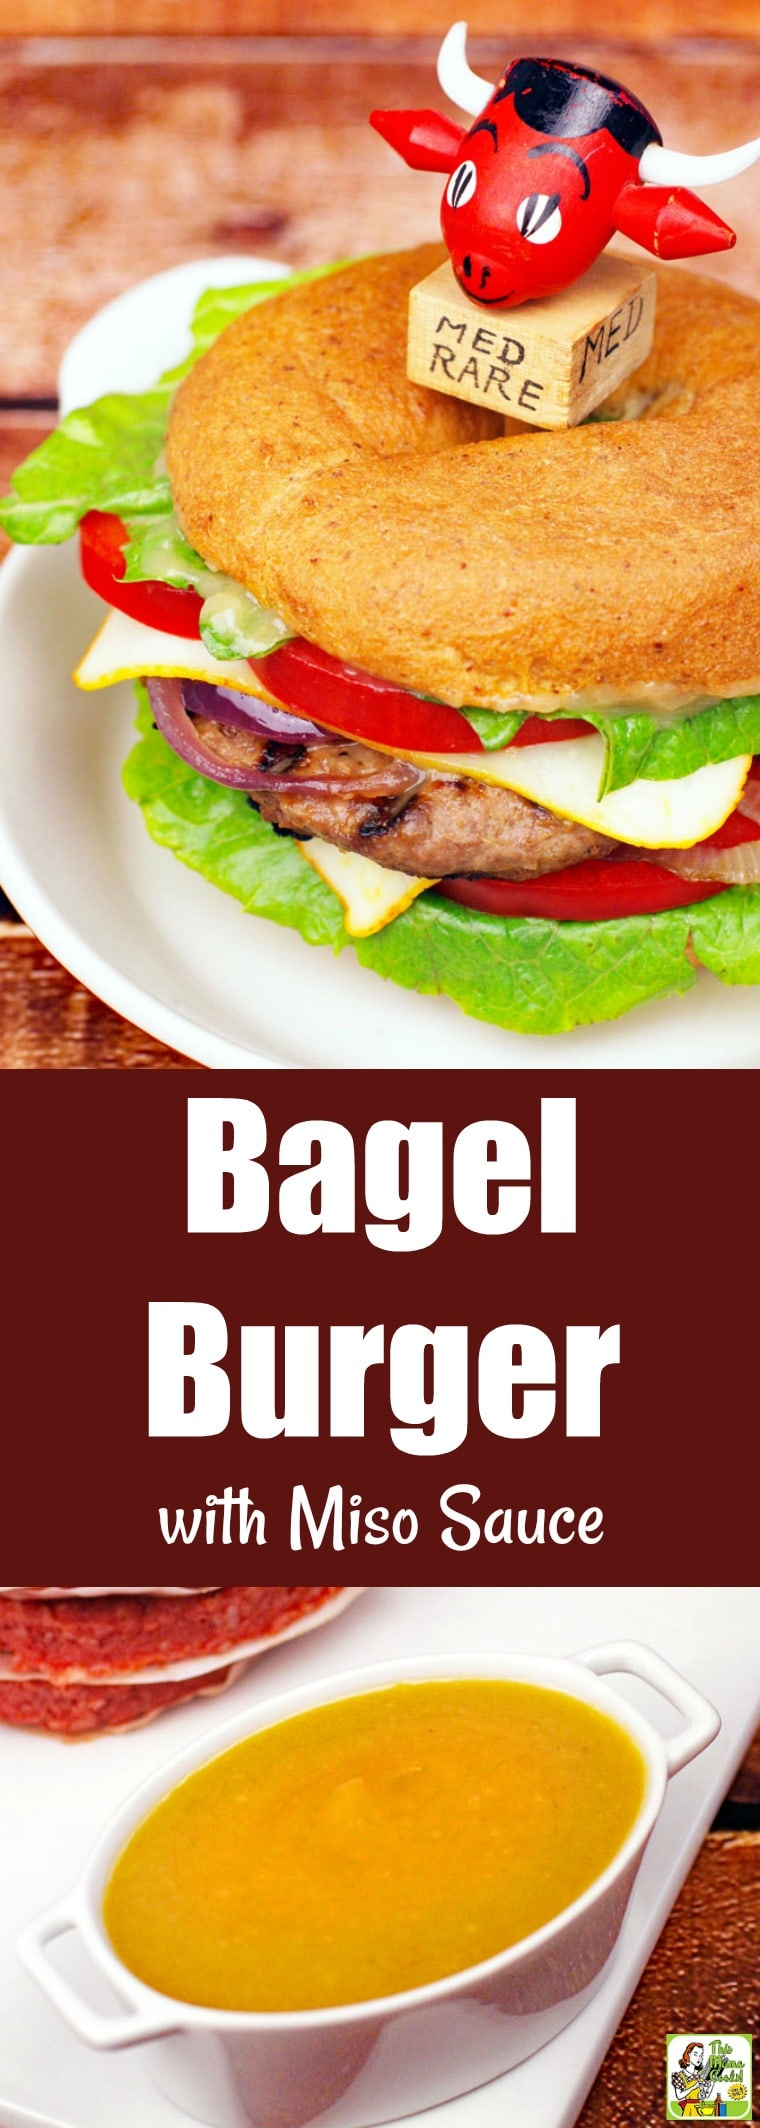 Bagel Burger with Miso Sauce